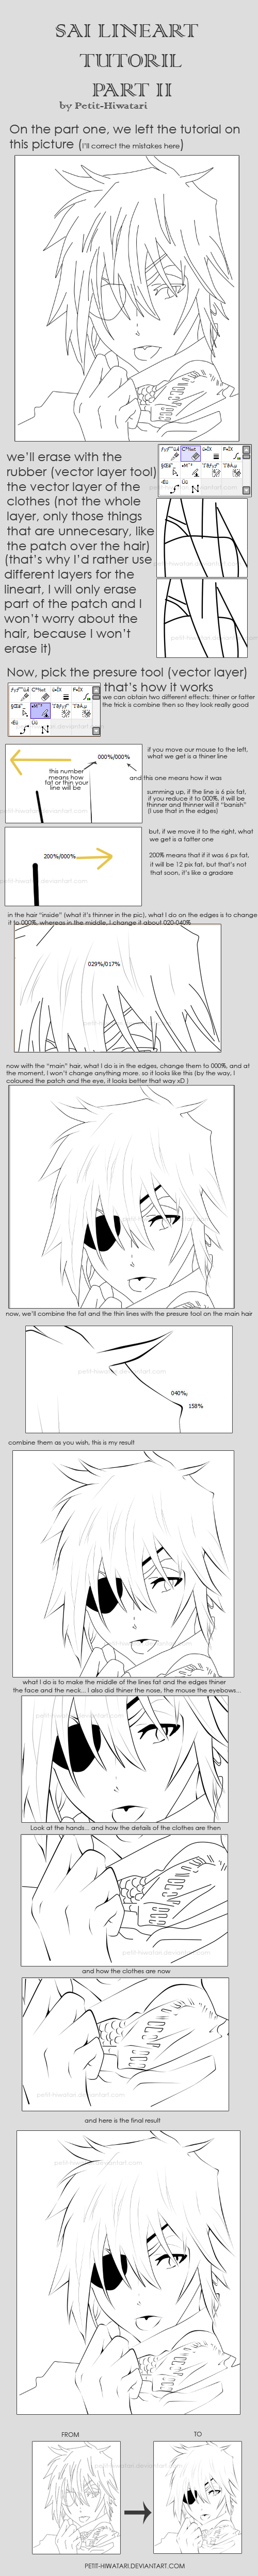 SAI lineart tutorial - part II - NO TABLET NEEDED by Dokan-Kuwabara